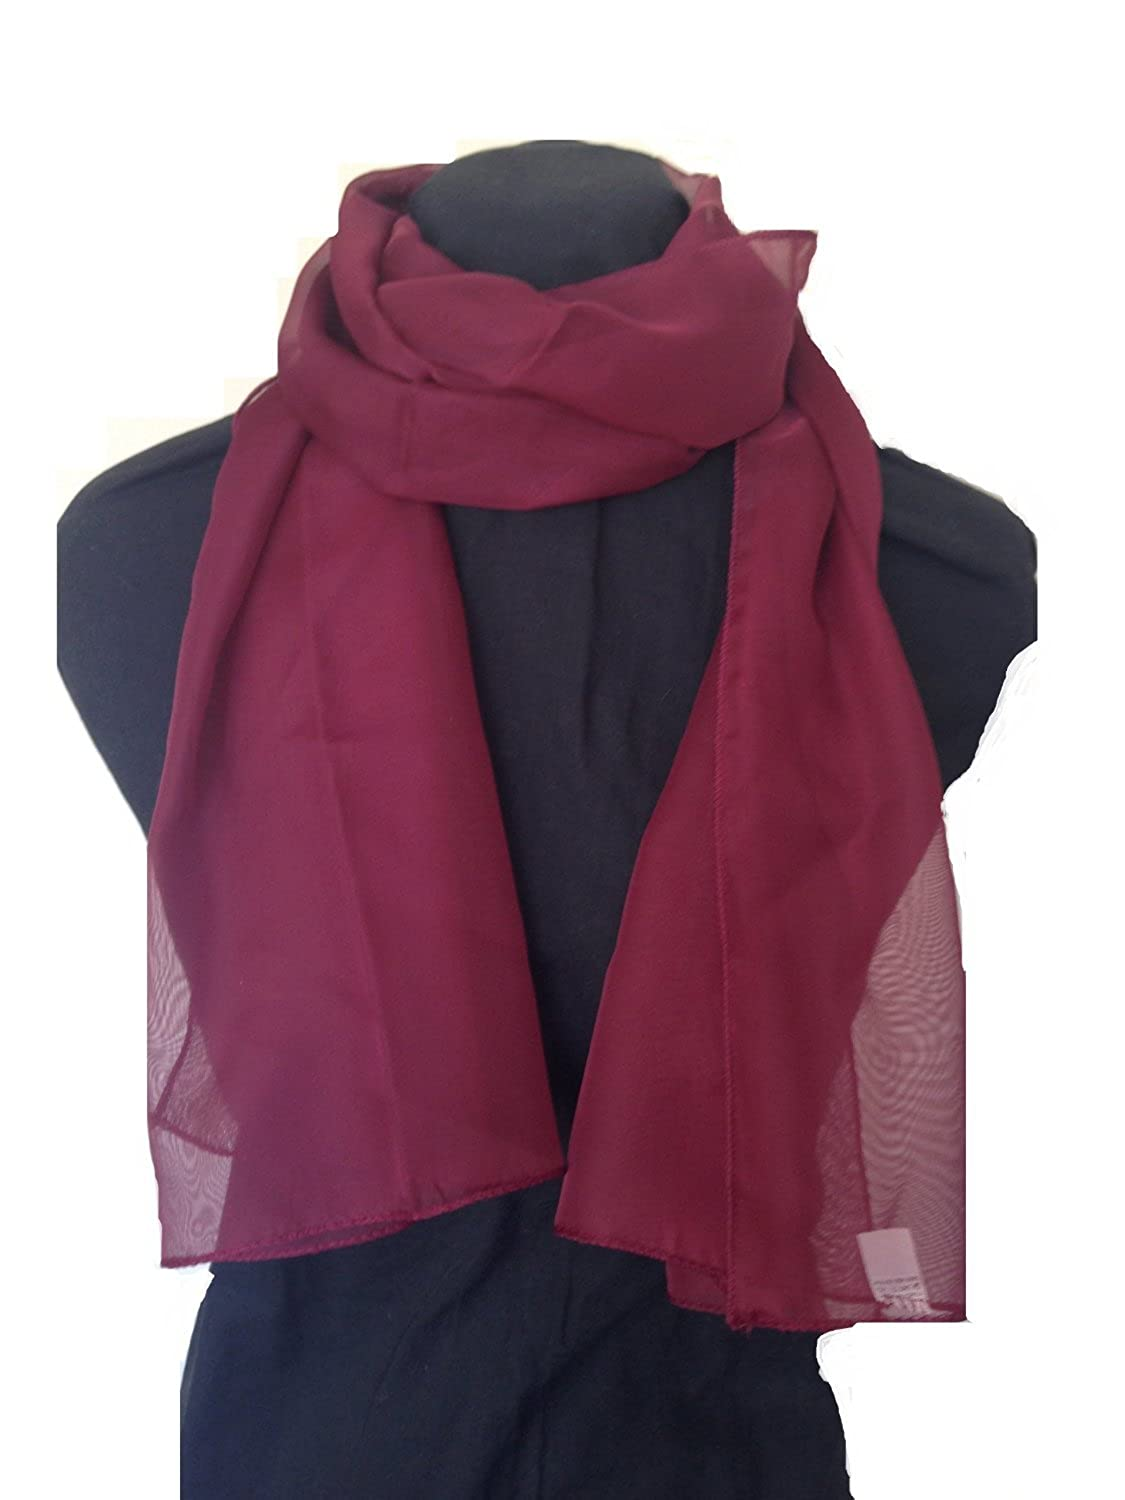 Mytoptrendz® Lady Plain Soft Thin Chiffon Scarves Burgundy FC001BG